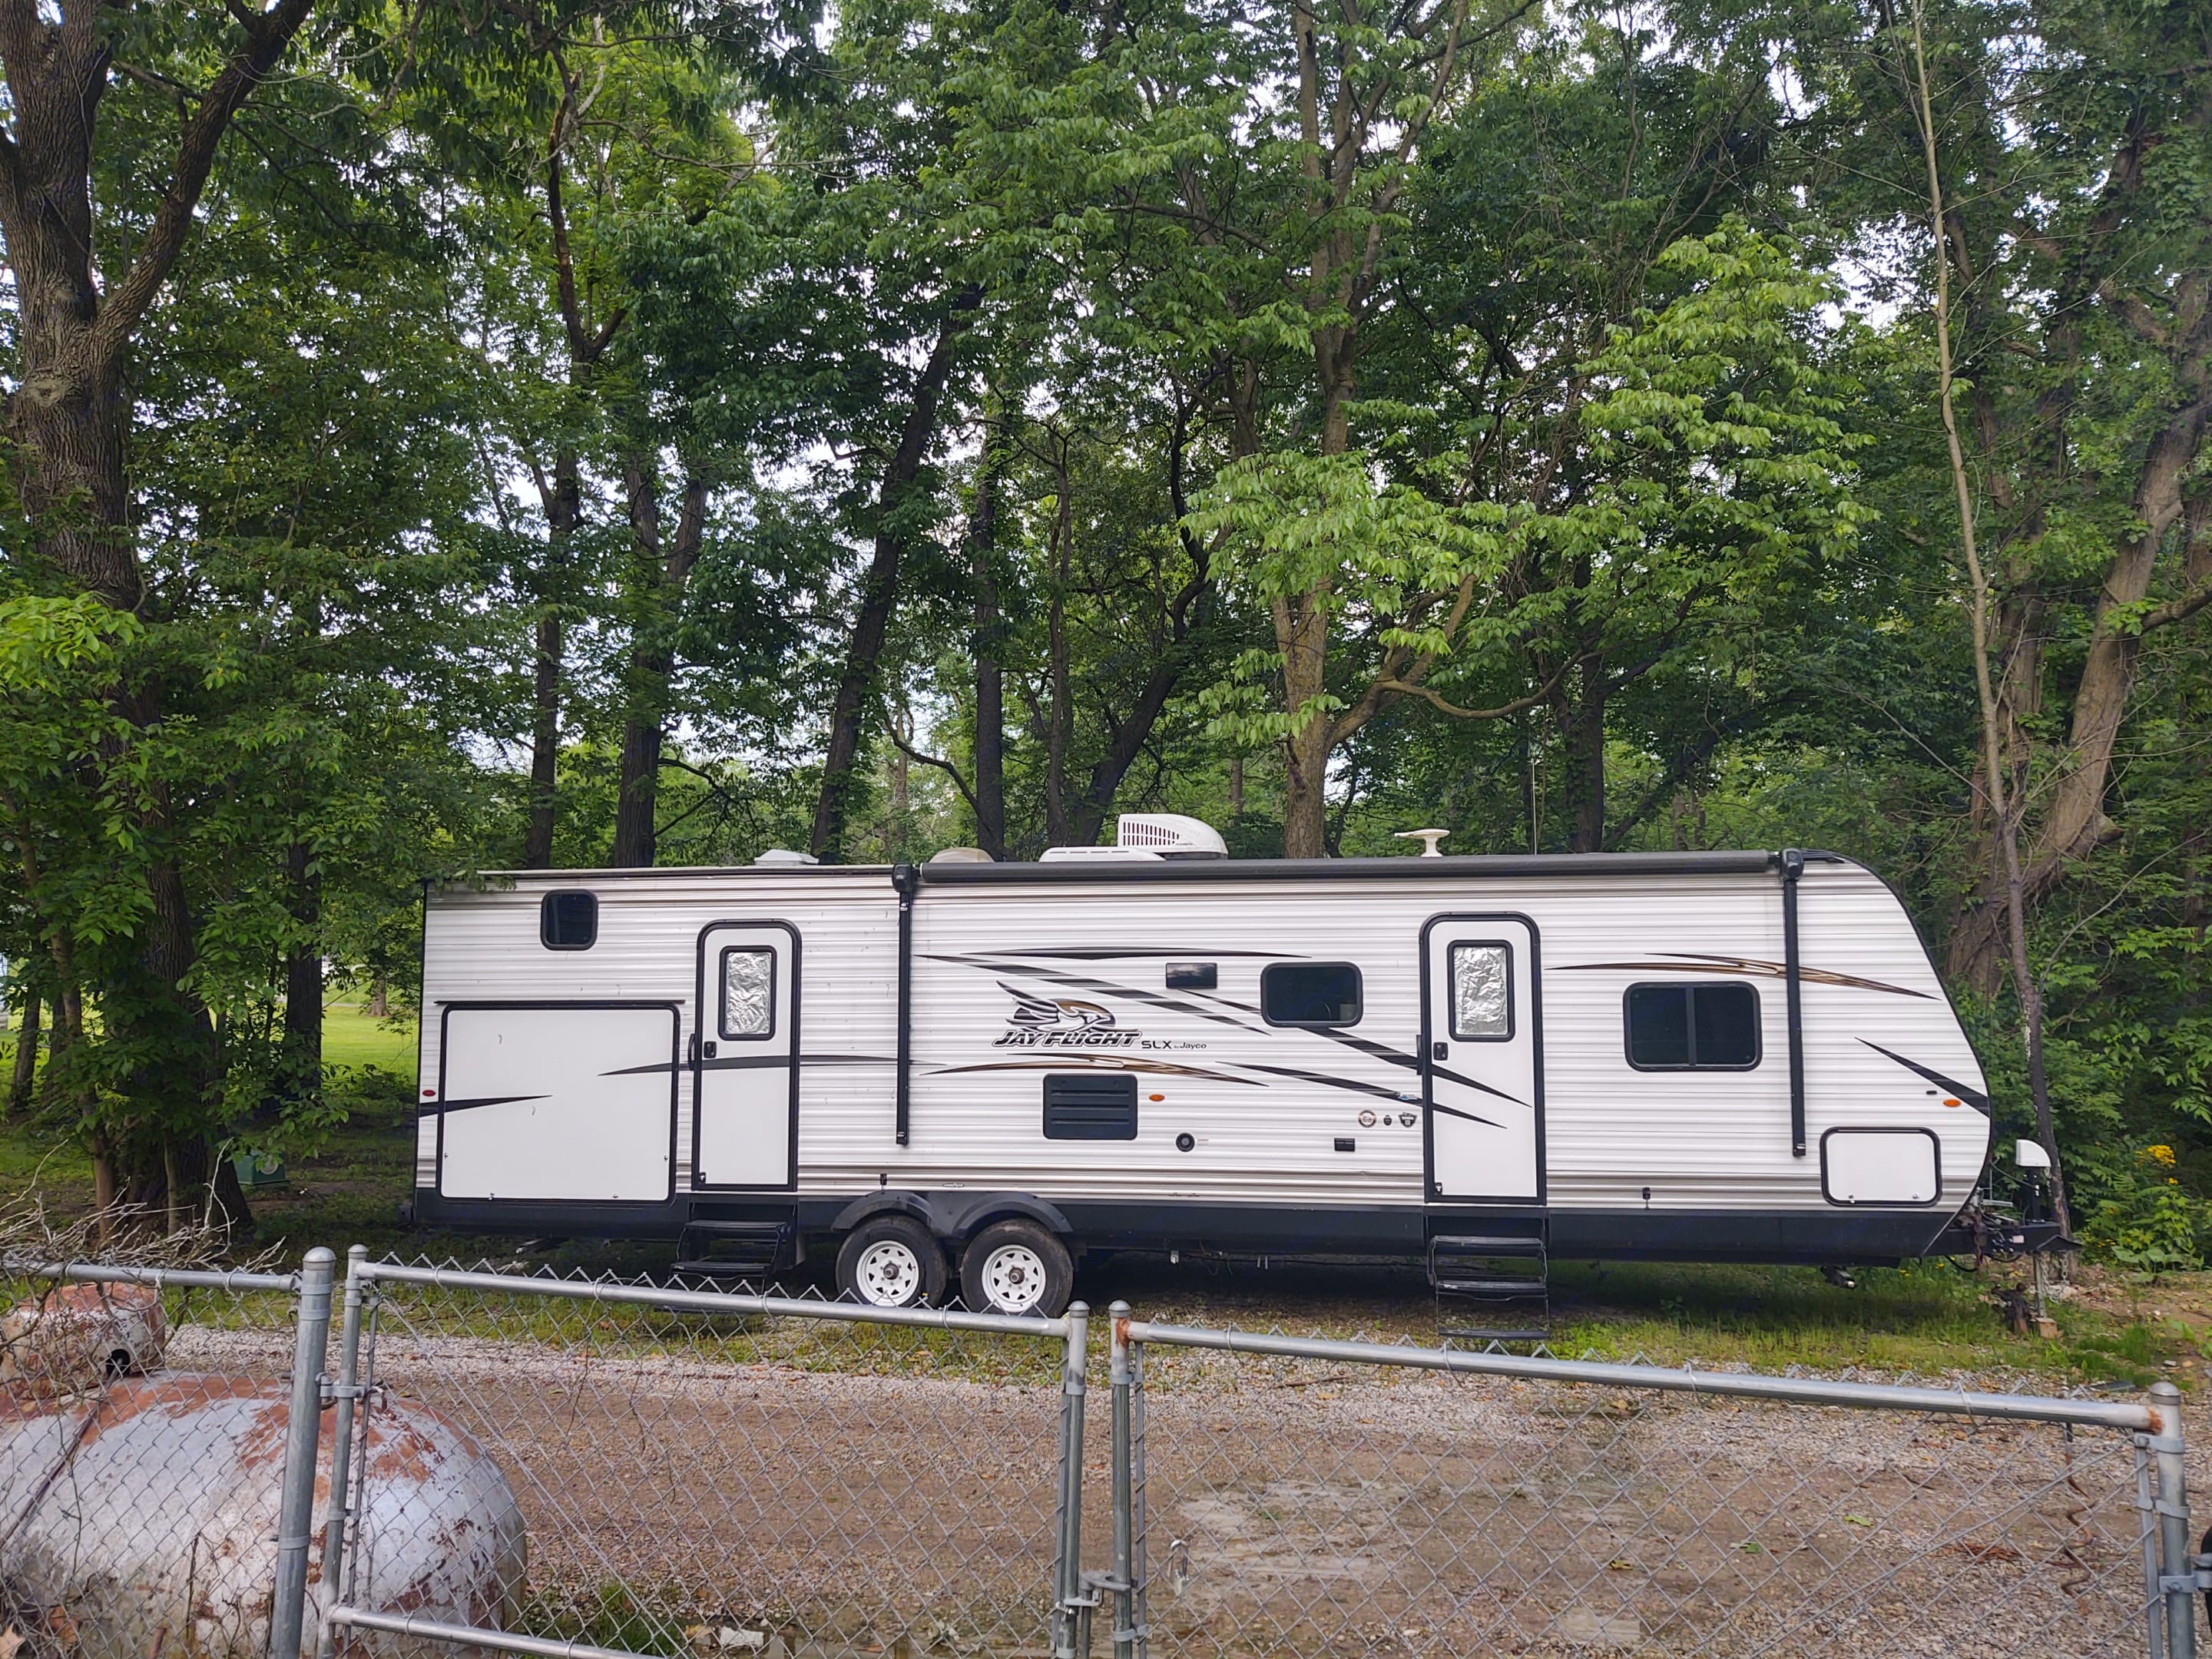 Outdoor kitchen has stove sink and refrigerator. Jayco Jay Flight 2018